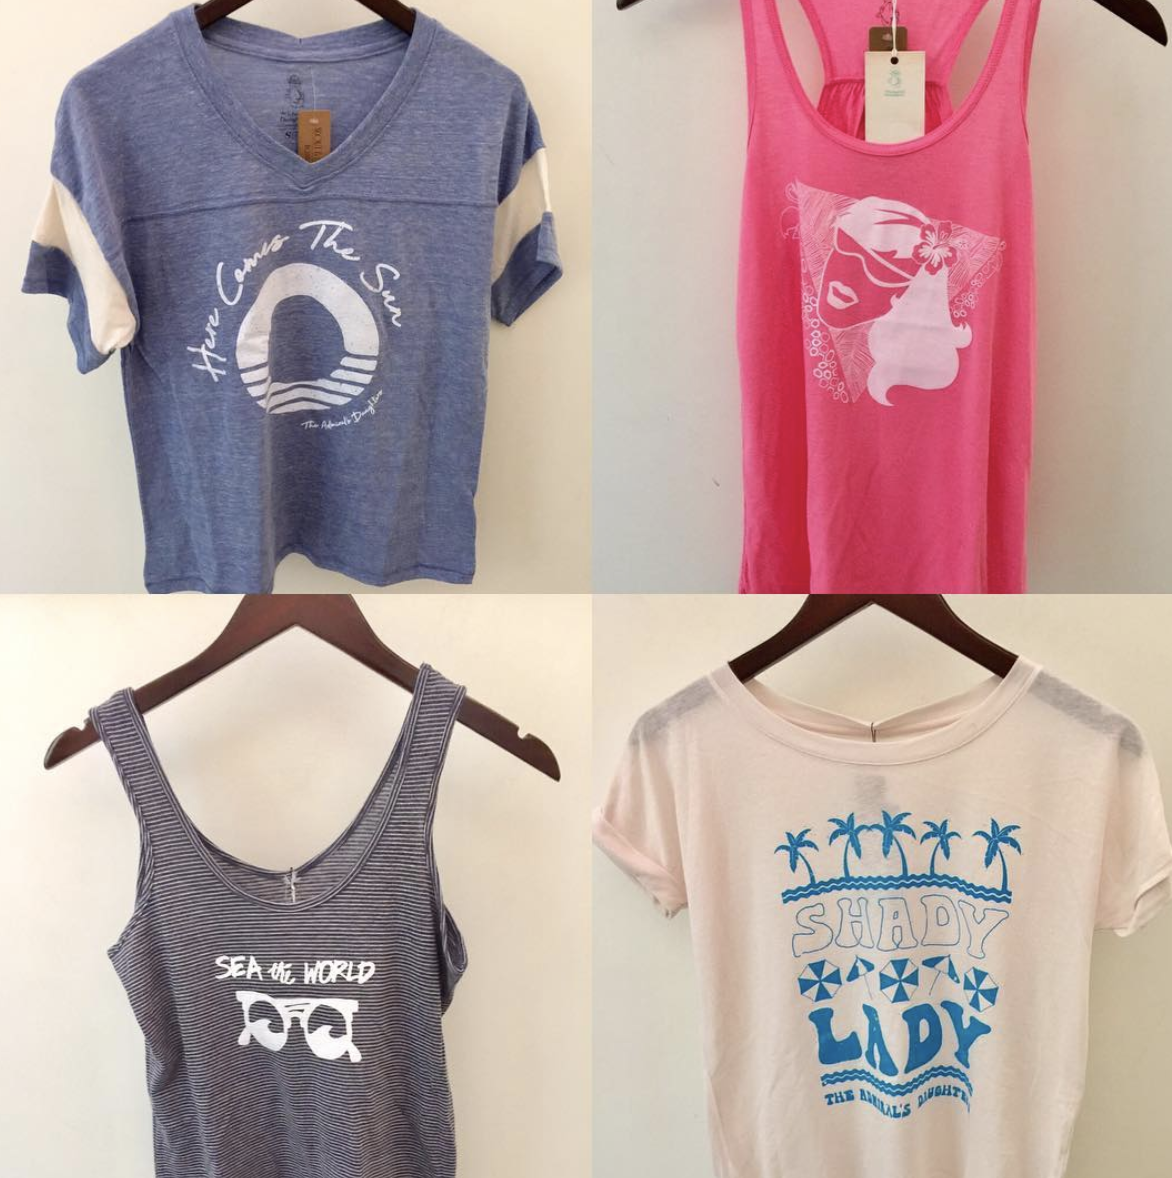 1. The Admiral's Daughter Locally Made Tees And Tanks